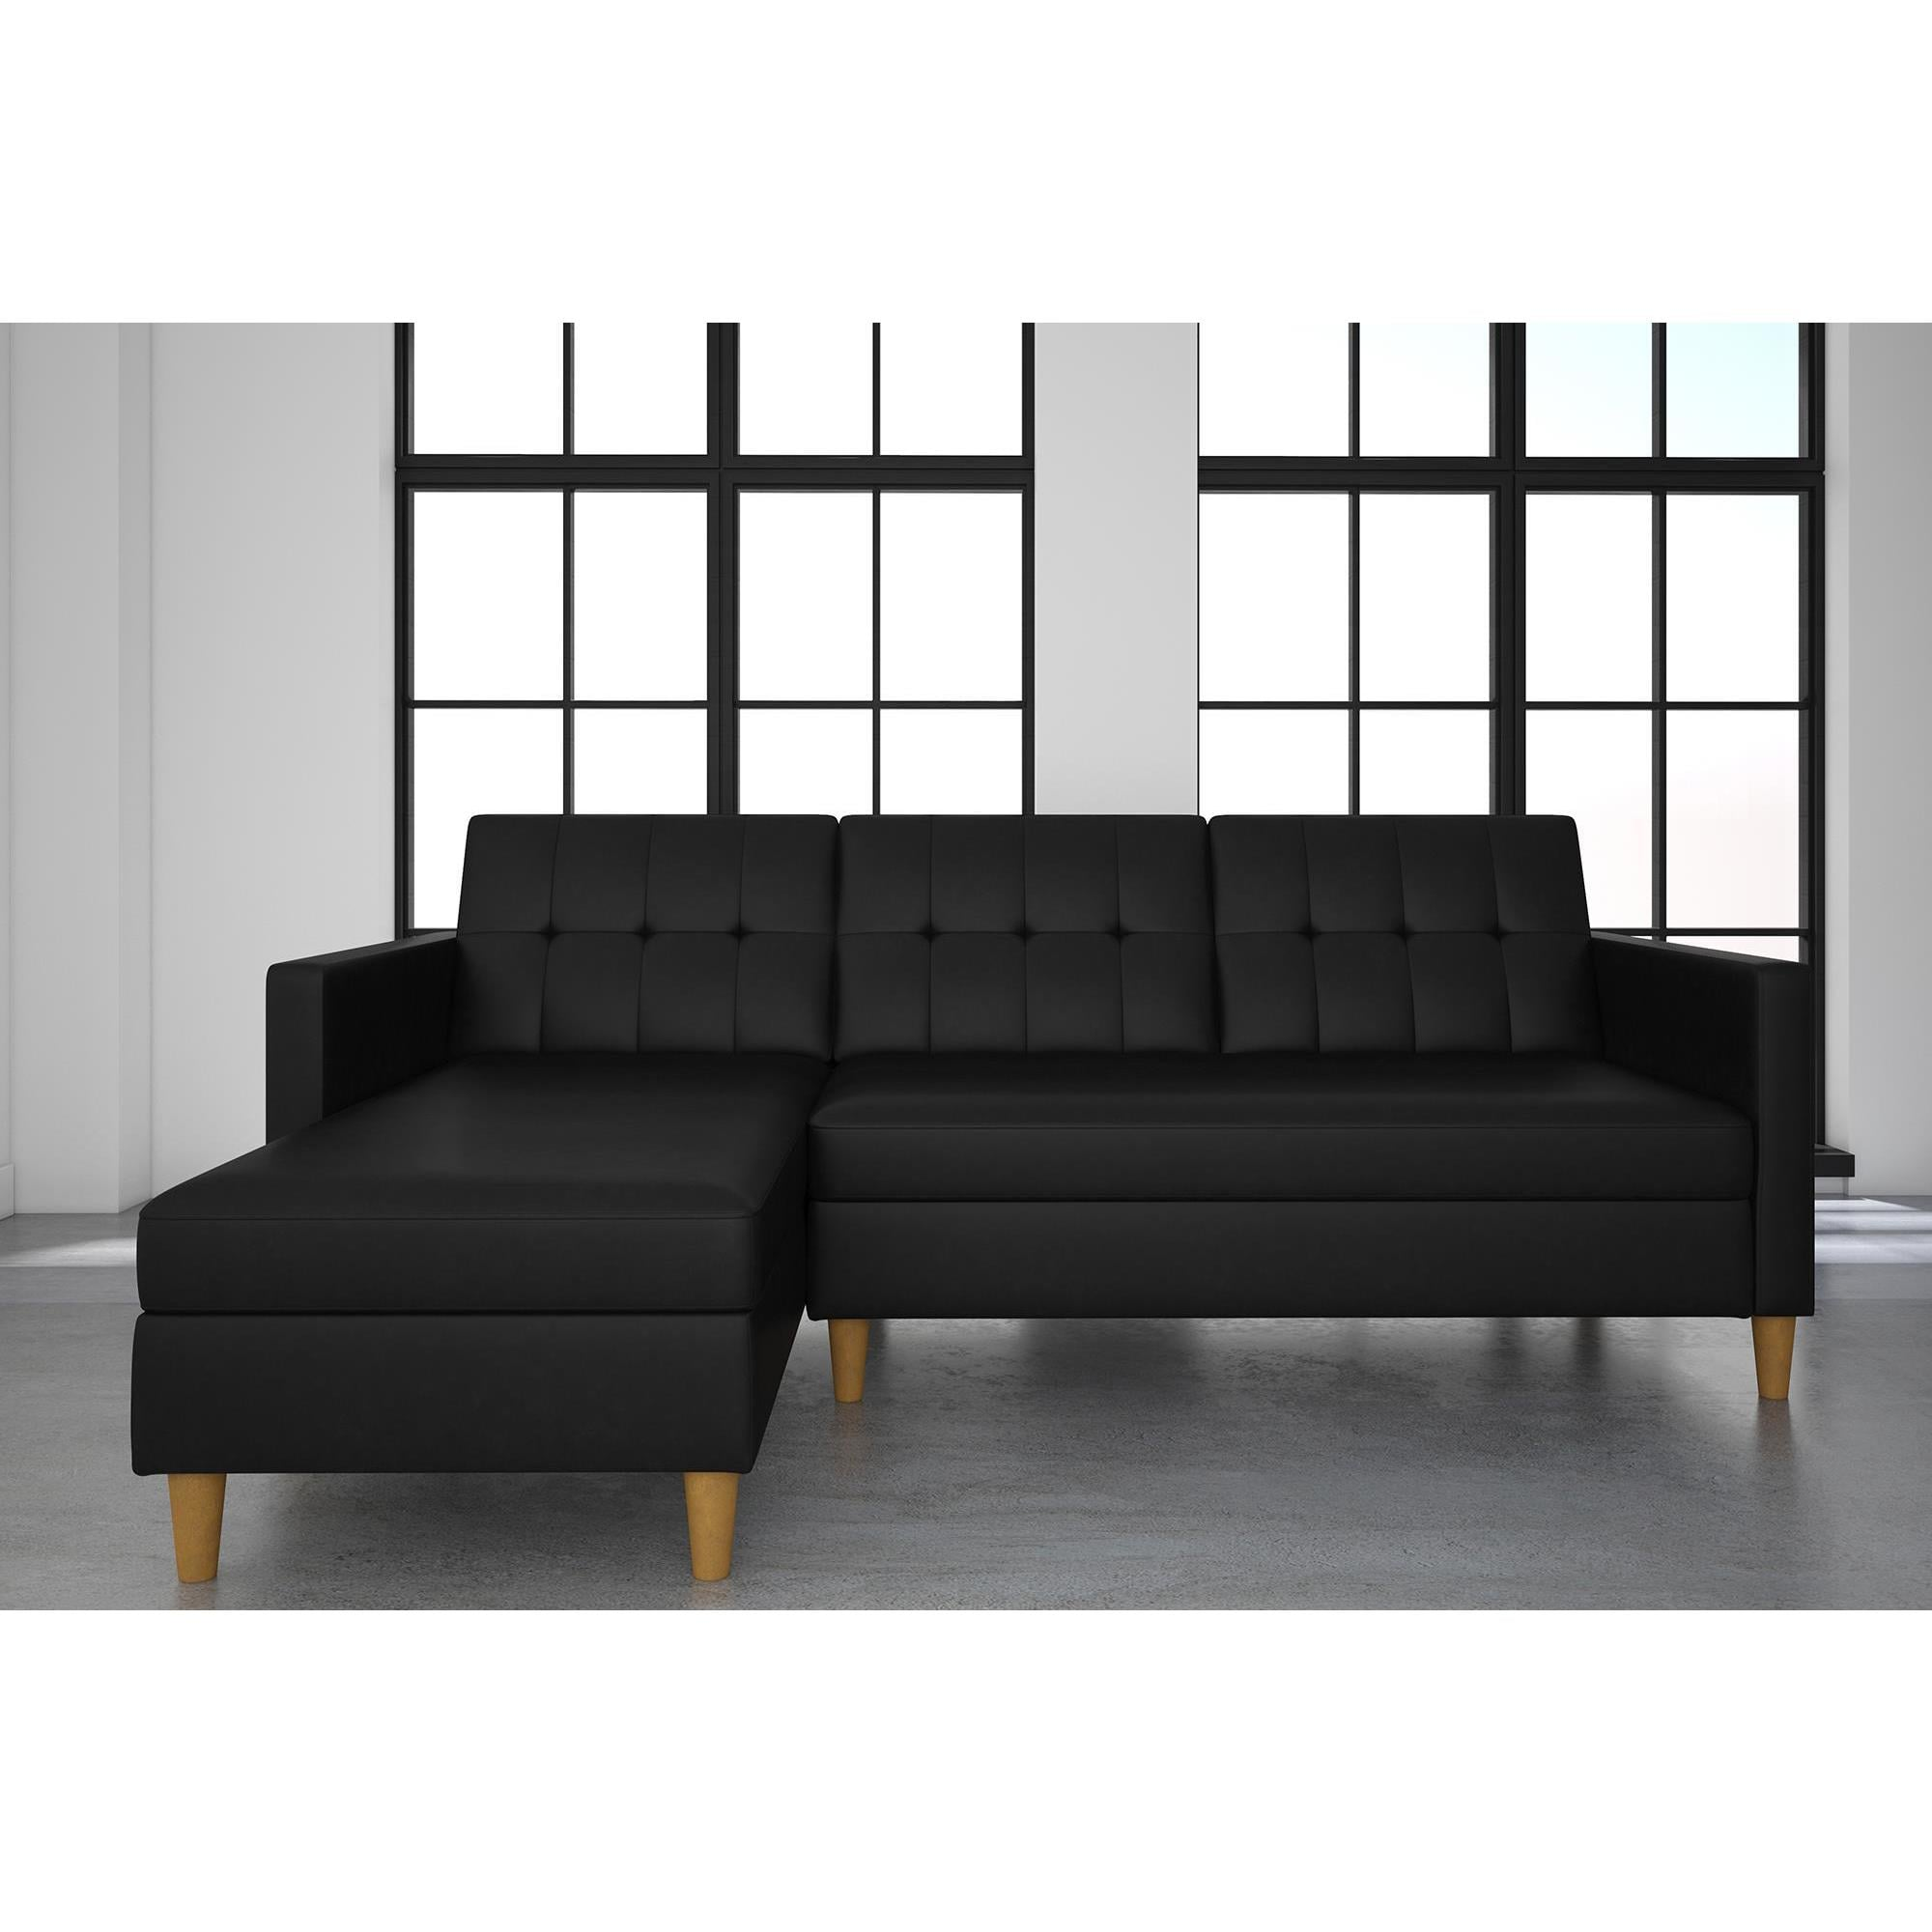 Dhp Hartford Black Faux Leather Storage Sectional Futon Free Shipping Today Com 17351298